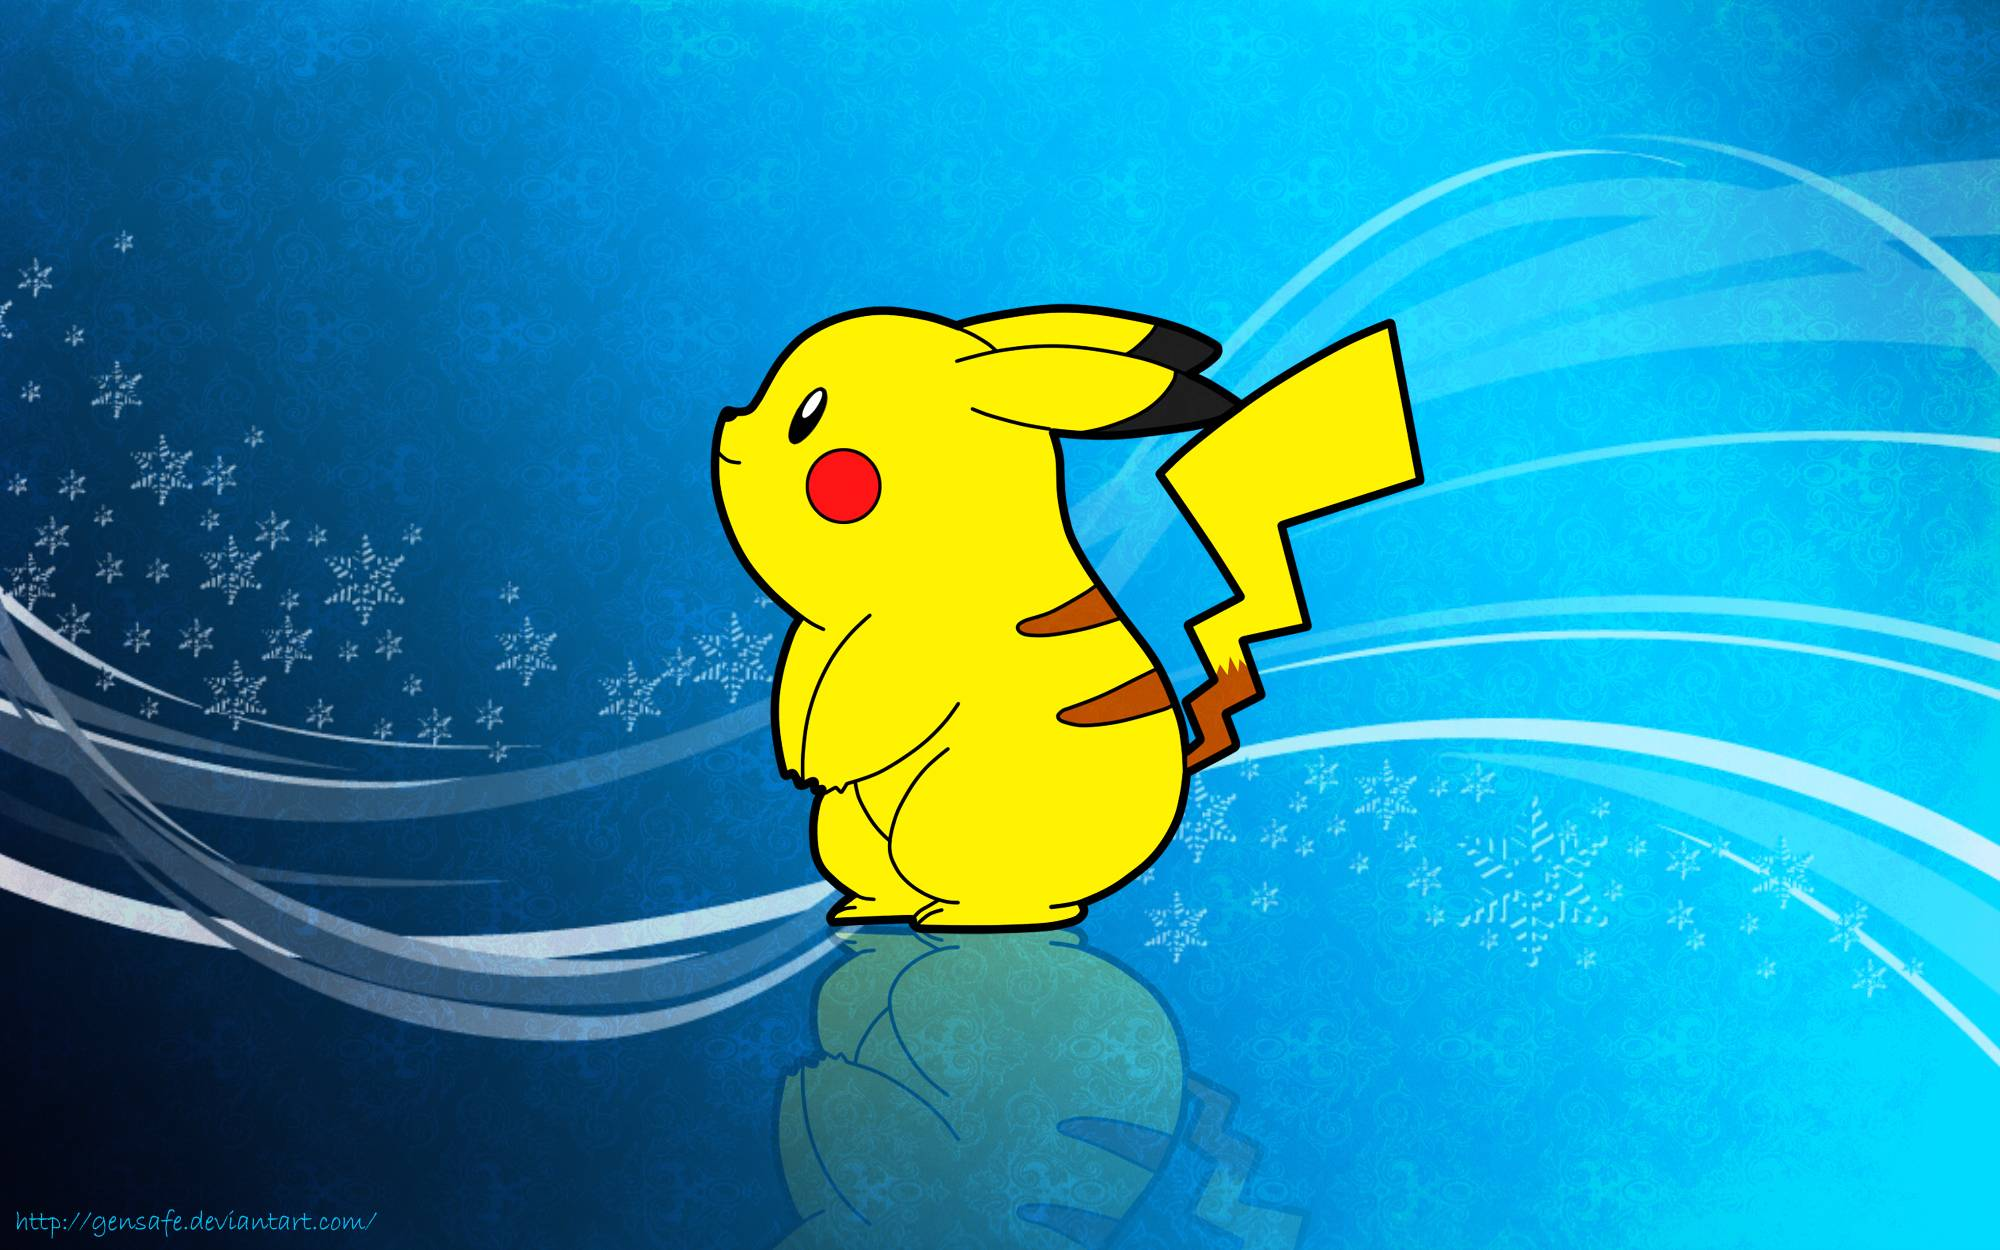 Wallpapers For > Pokemon Wallpapers Pikachu Hd